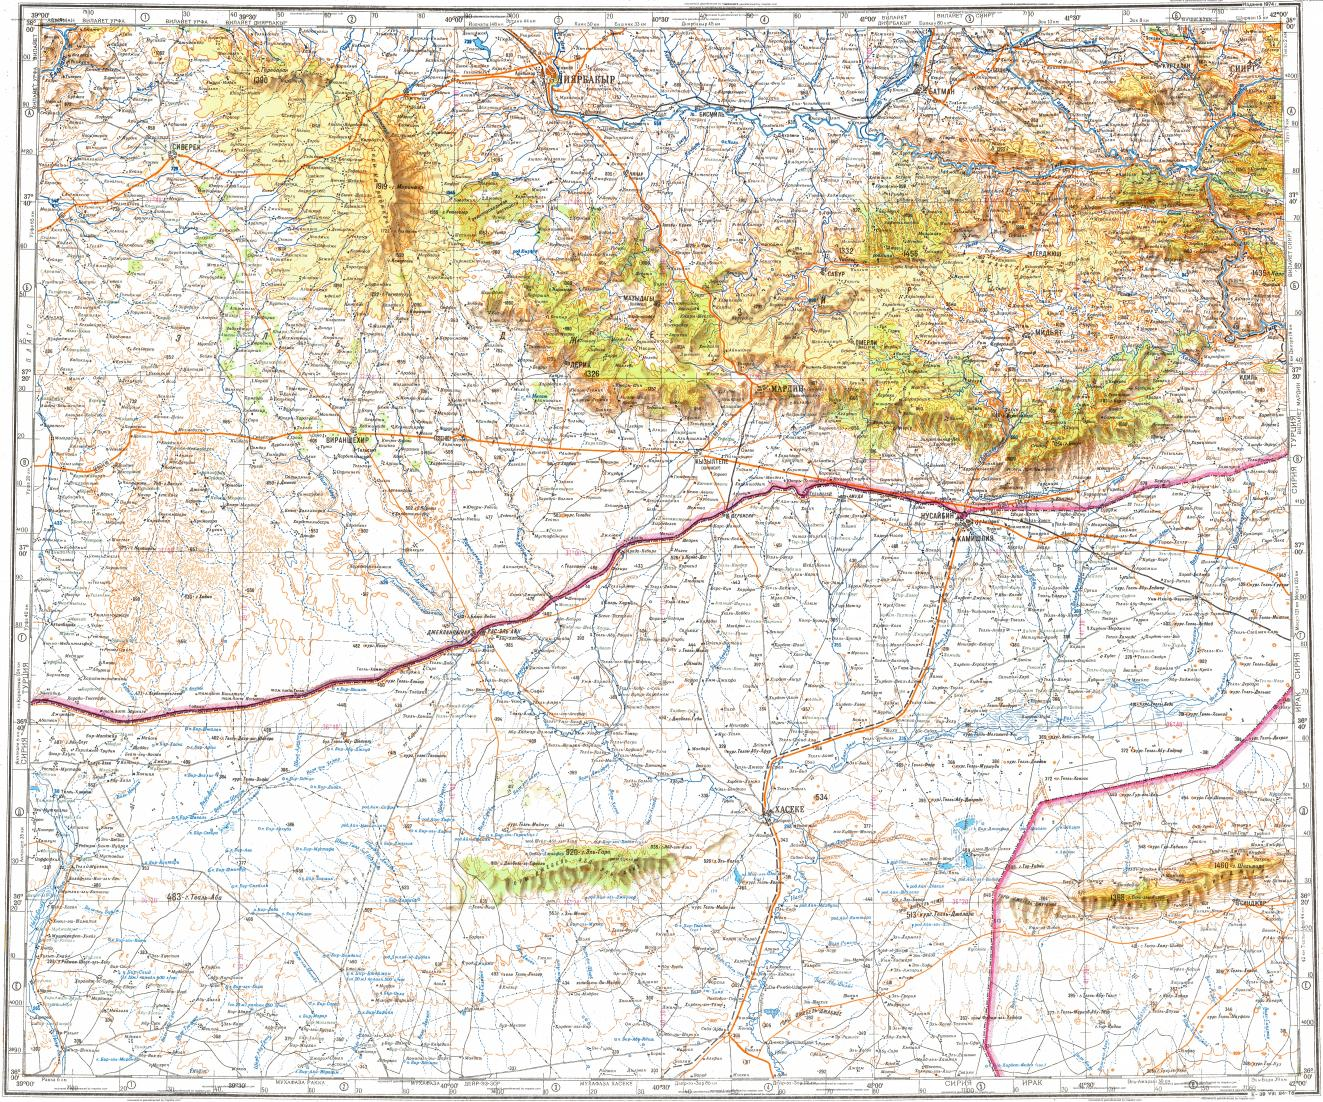 Download topographic map in area of Diyarbakir Al Hasakah Al